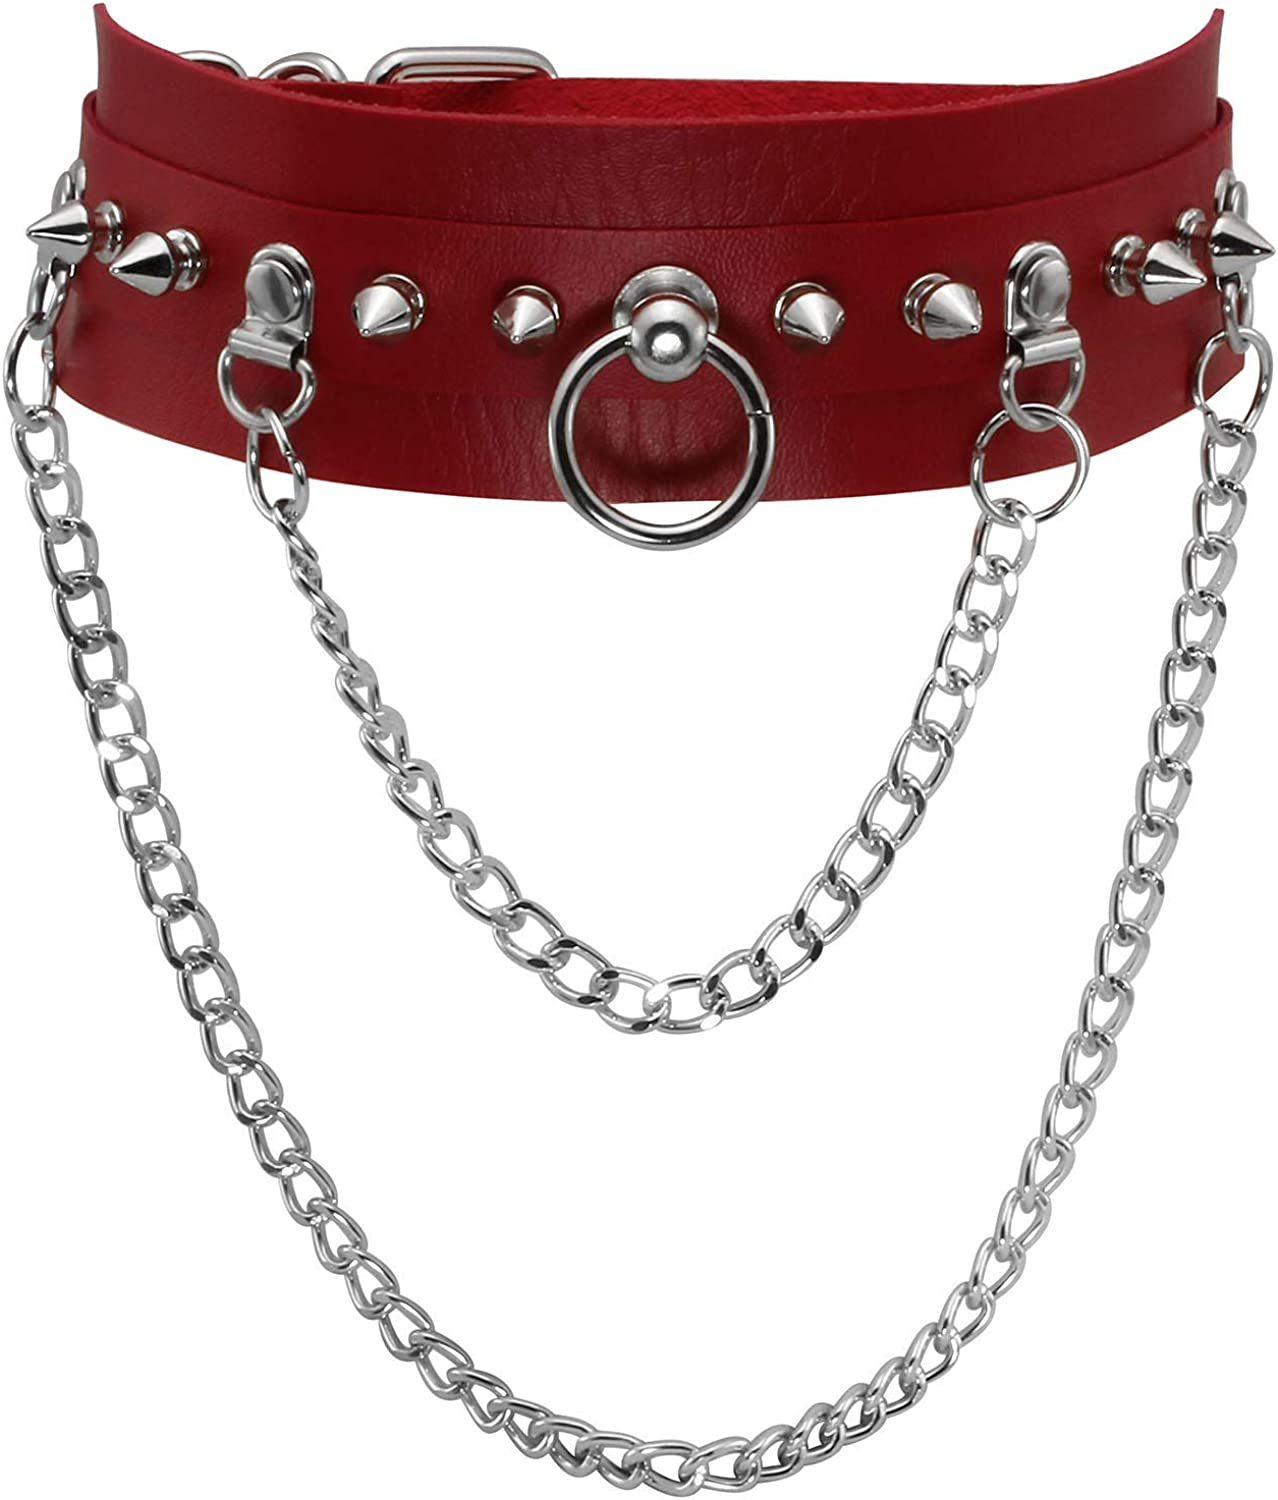 JJDreams Vintage Punk Black PU Leather Choker Cool Studded Rivet Gothic Necklace Collar with Chain